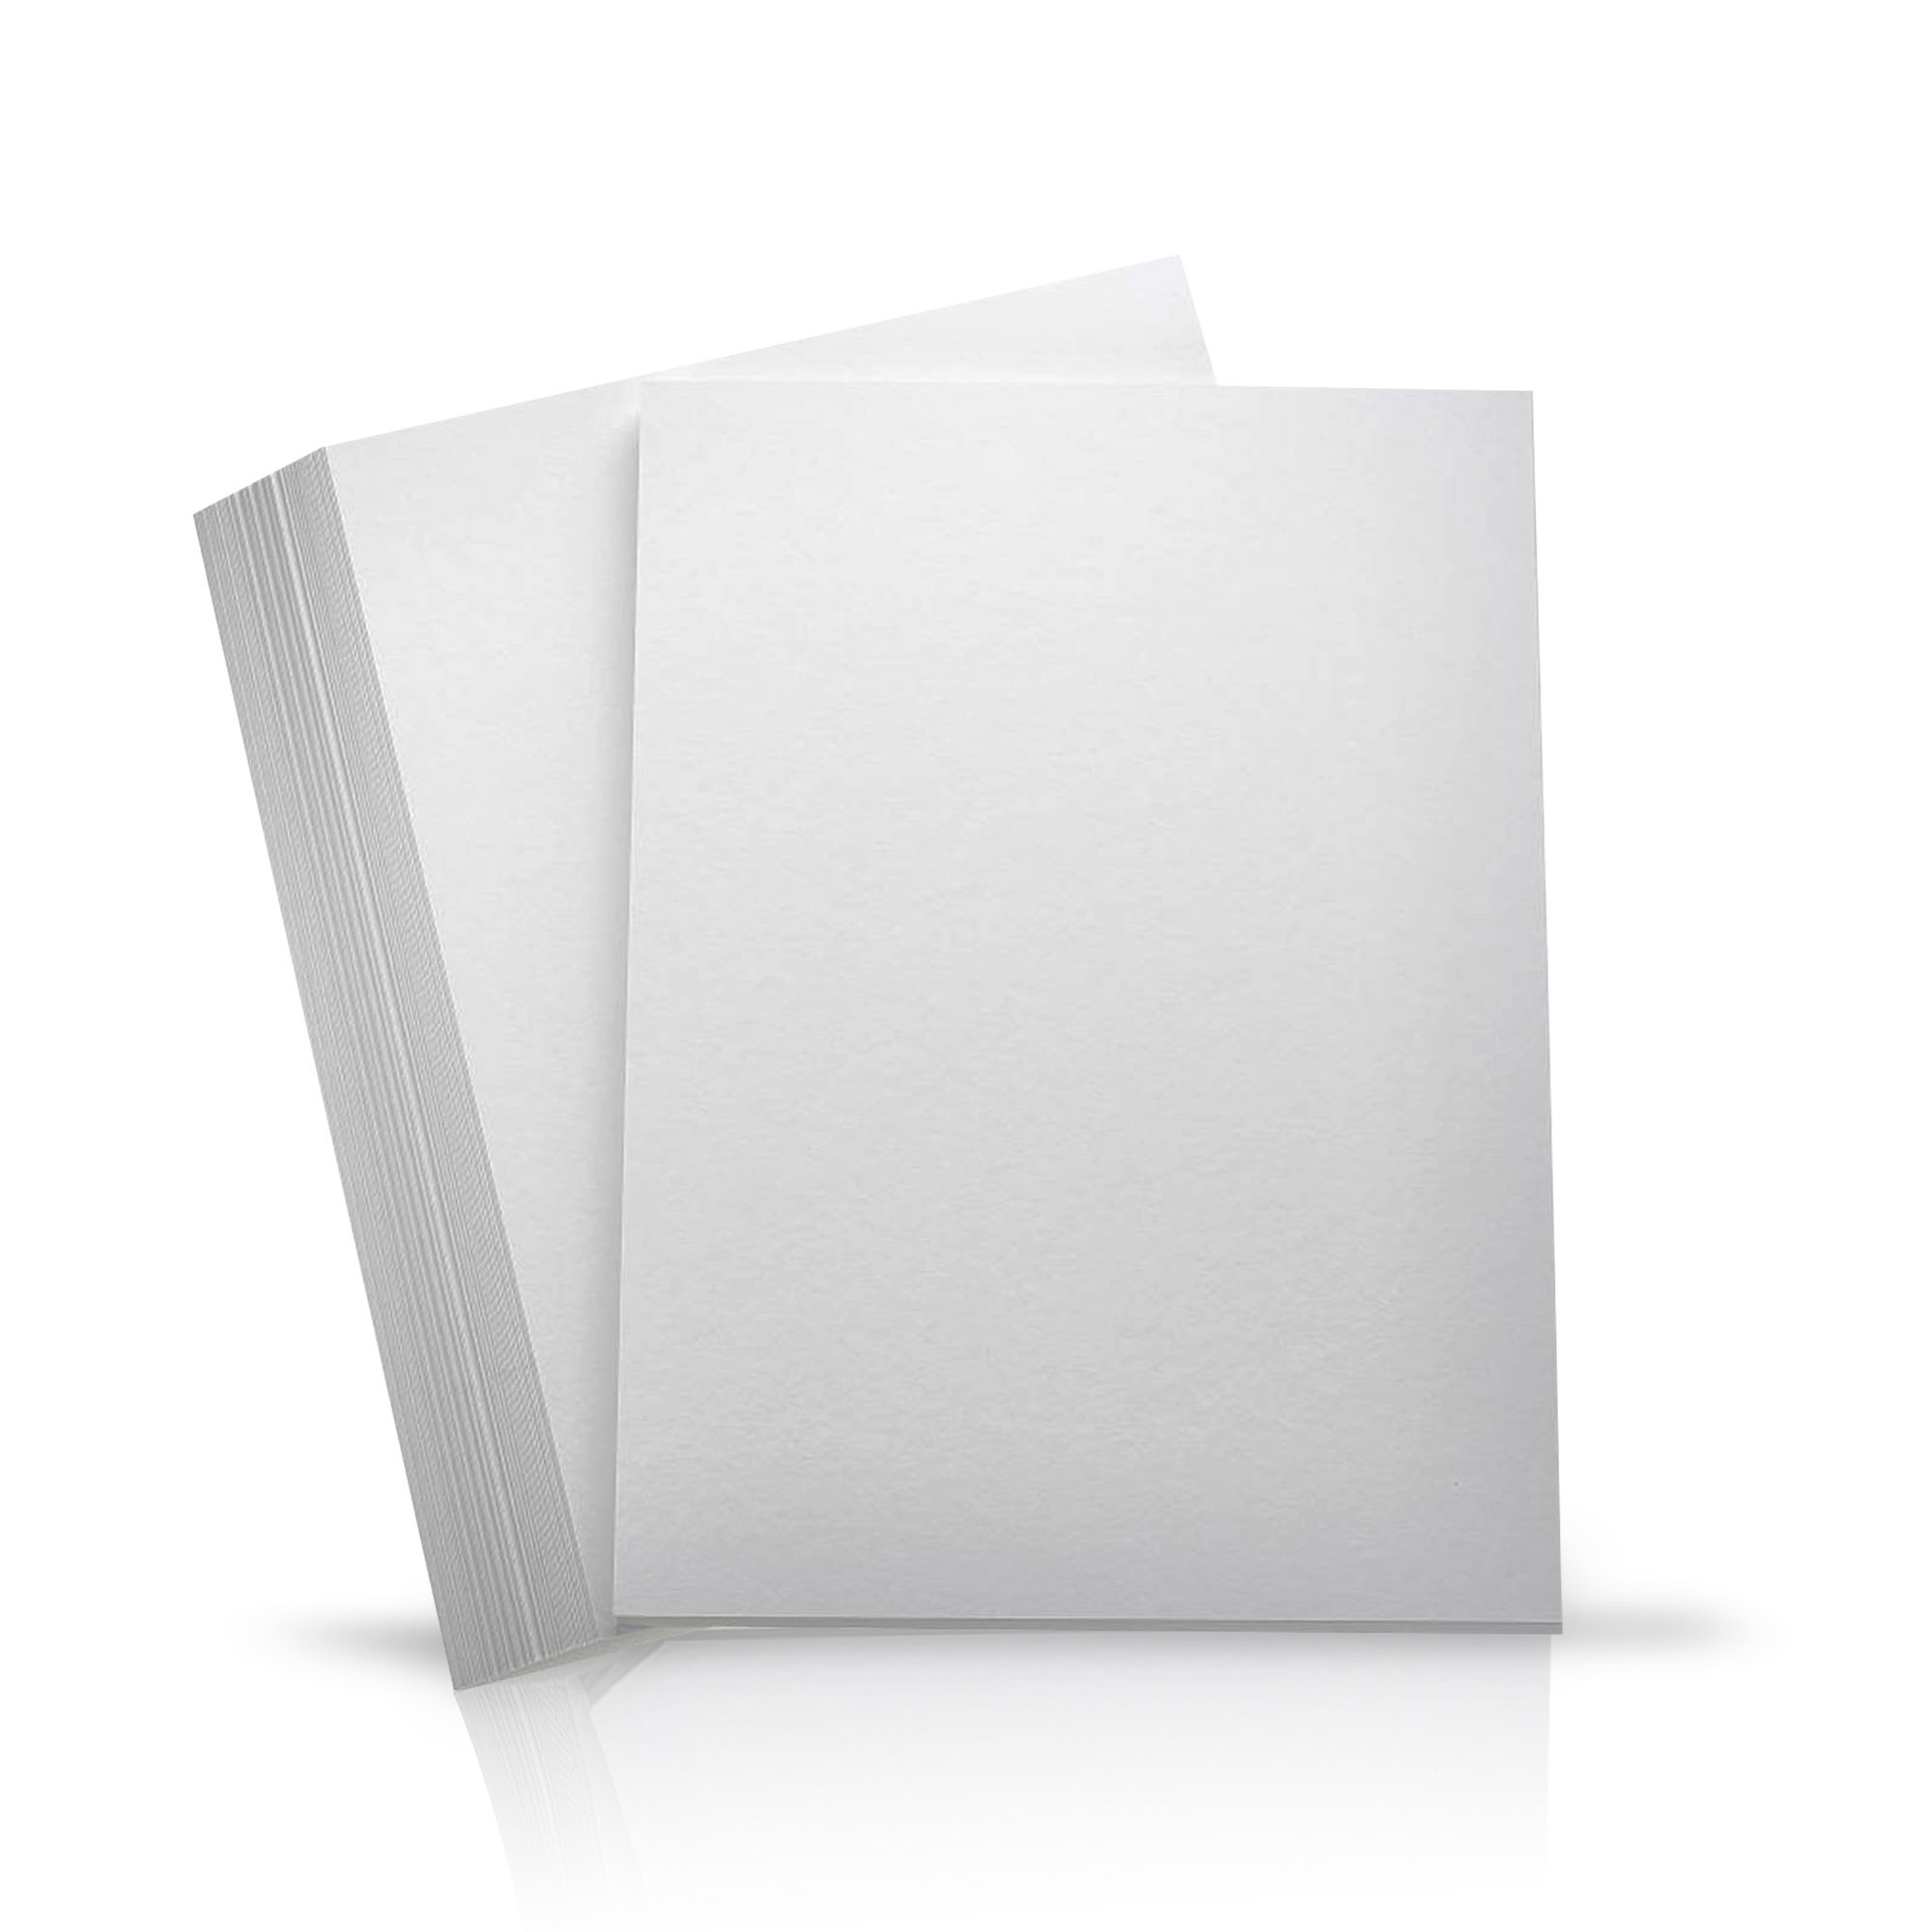 Edible Paper Sheets, Sugar Sheets, Icing sheets A3 20-count (17'' X 11'') Edible Paper for cake printers Made in Germany